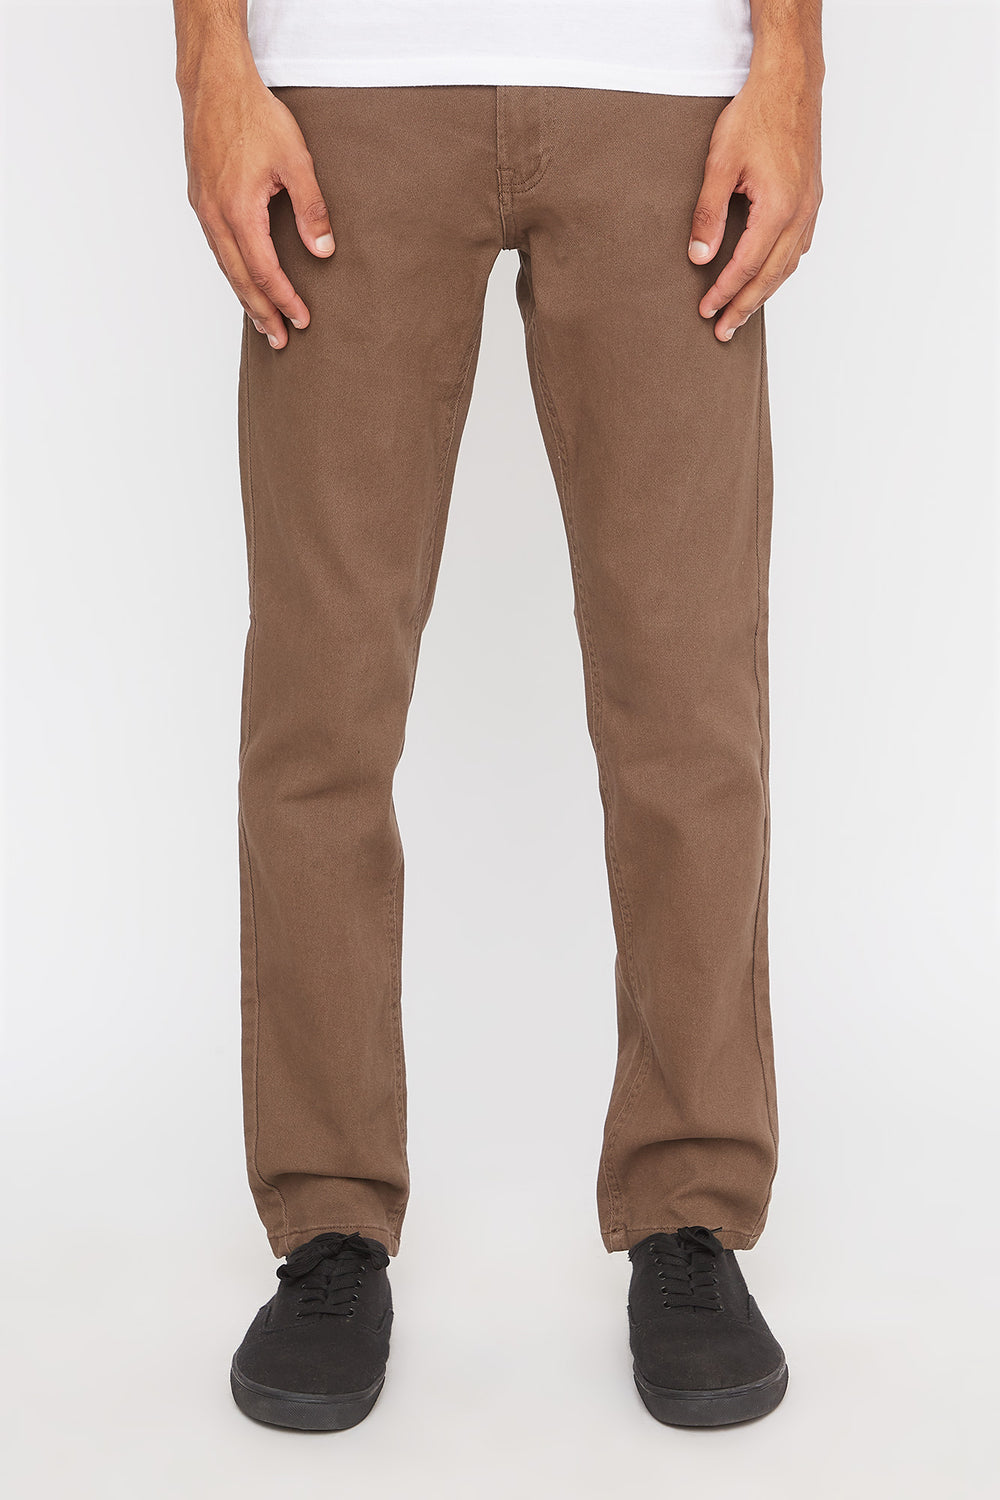 Zoo York Mens Stretch Slim Jeans Brown